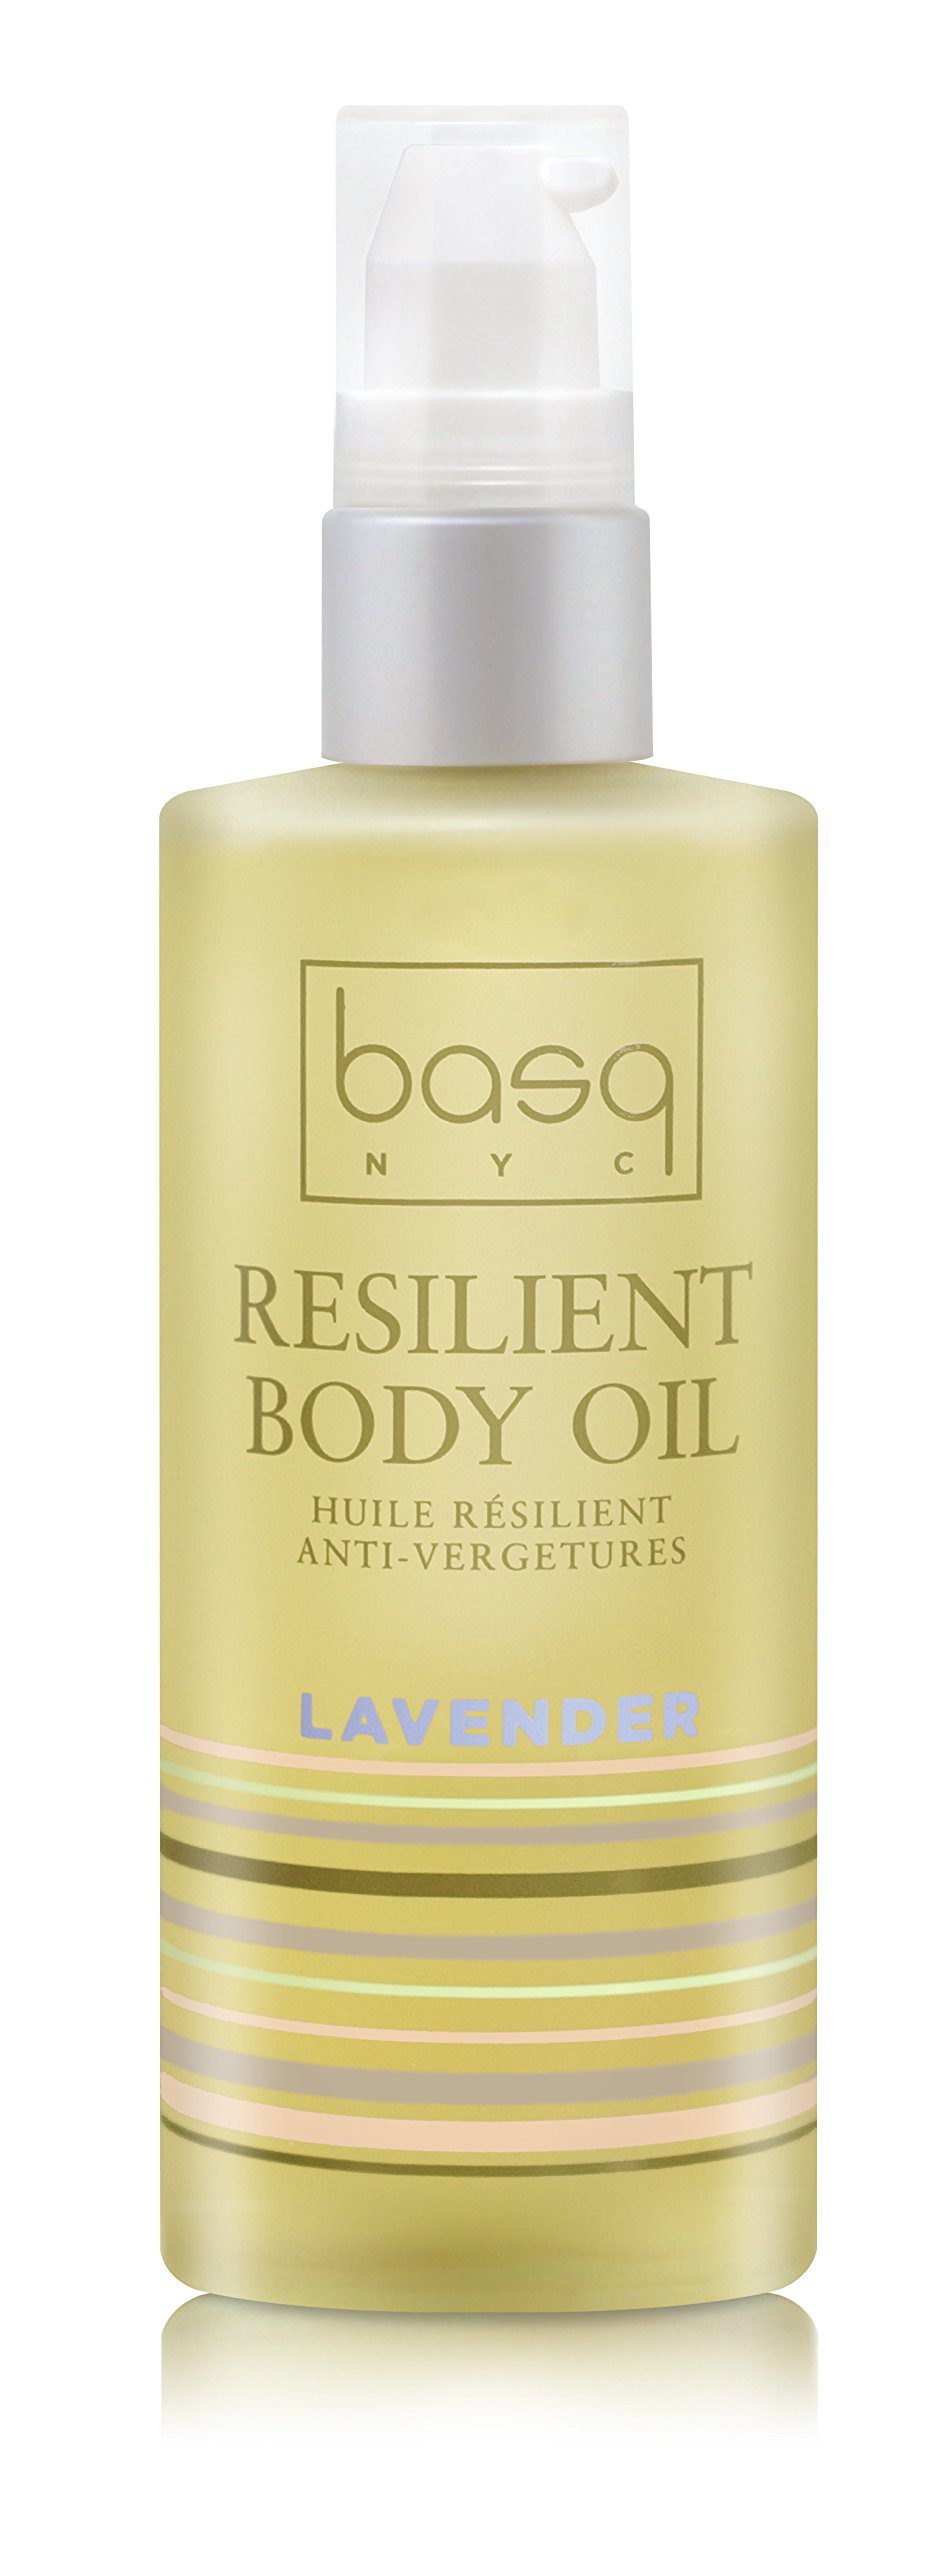 Basq Skin Care Resilient Body Stretch Mark Oil, Lavender, 4 Fluid Ounce